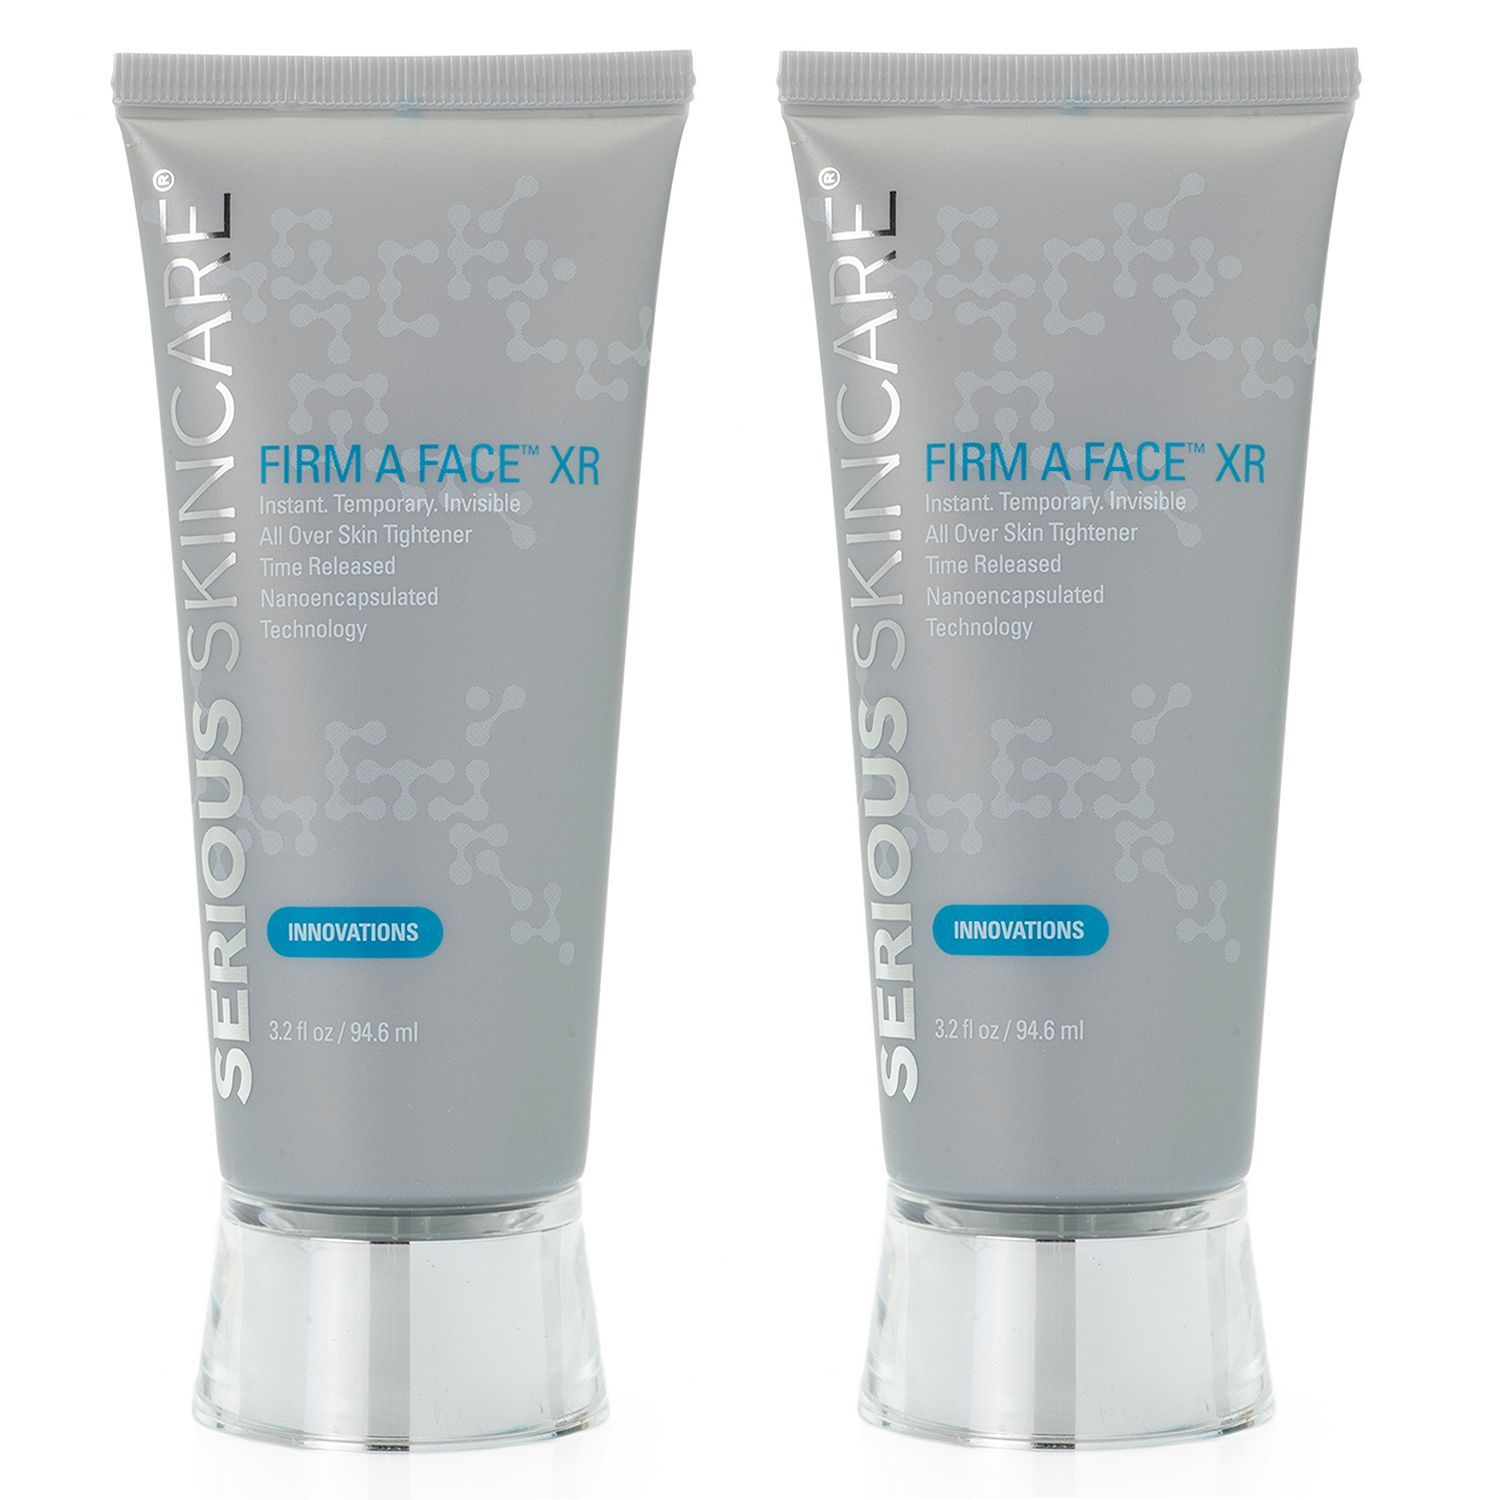 Serious Skincare Firm A Face XR Skin Tightener Twin Pack 3.2